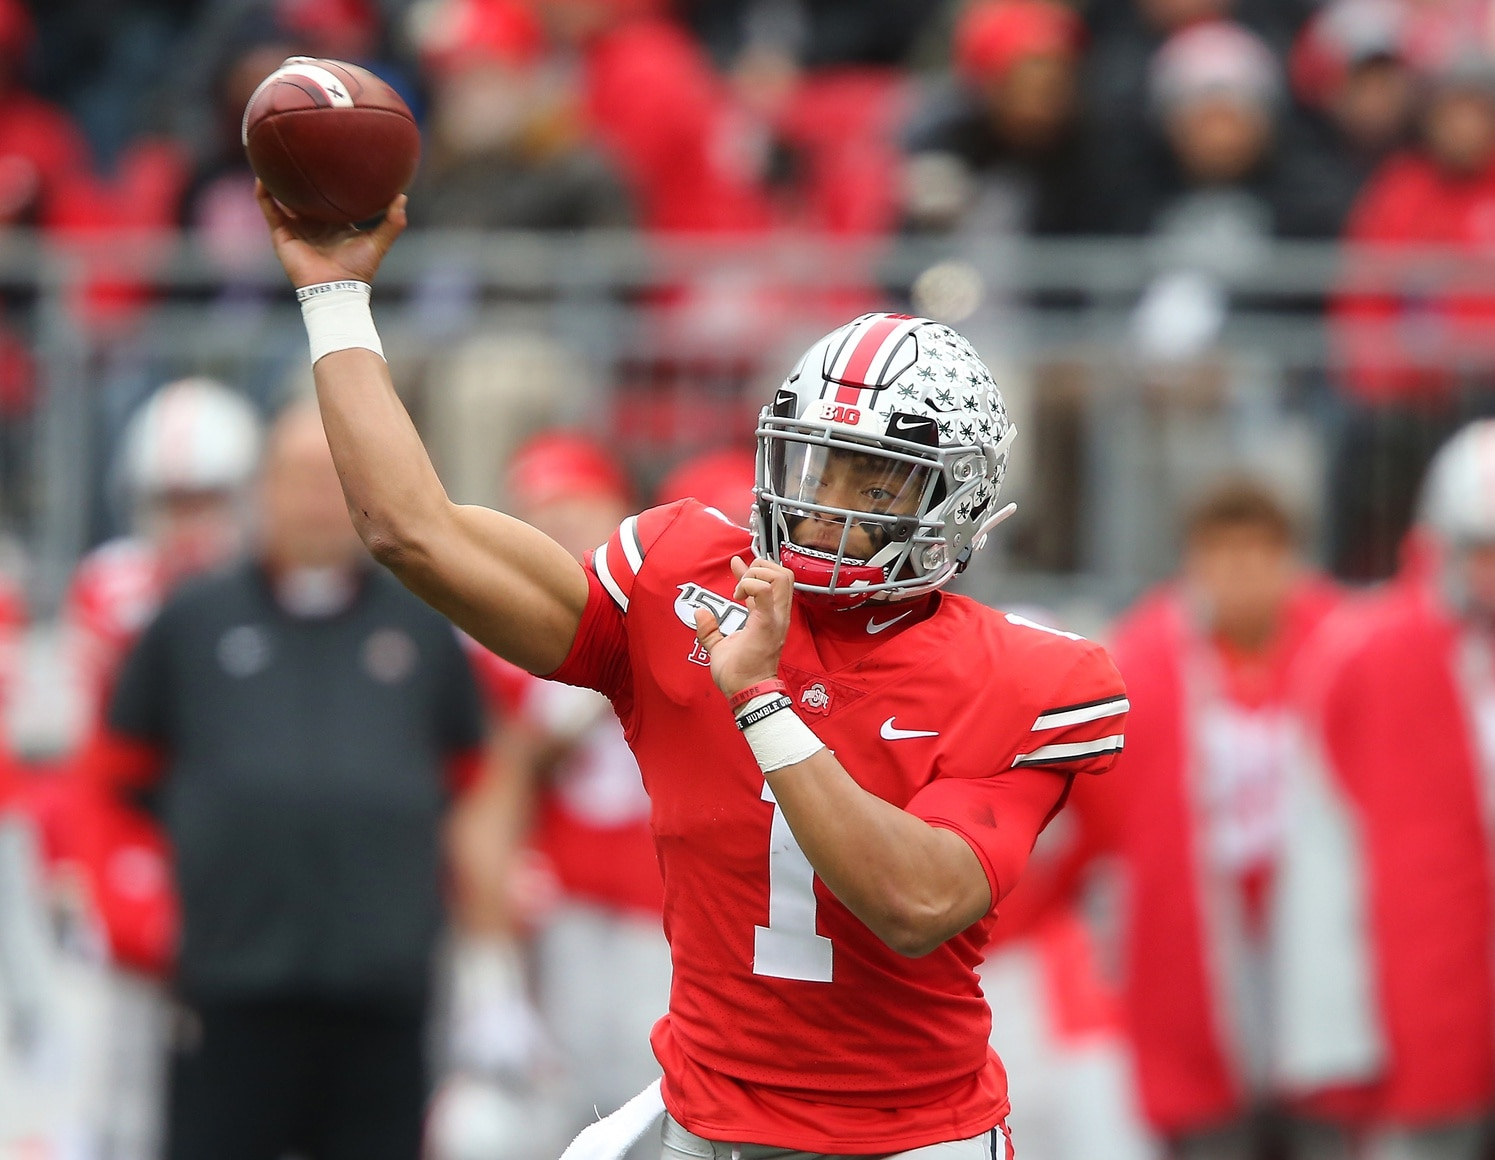 Ohio State Football Justin Fields Must Take Giant Leap To Take Buckeyes To CFB Playoff